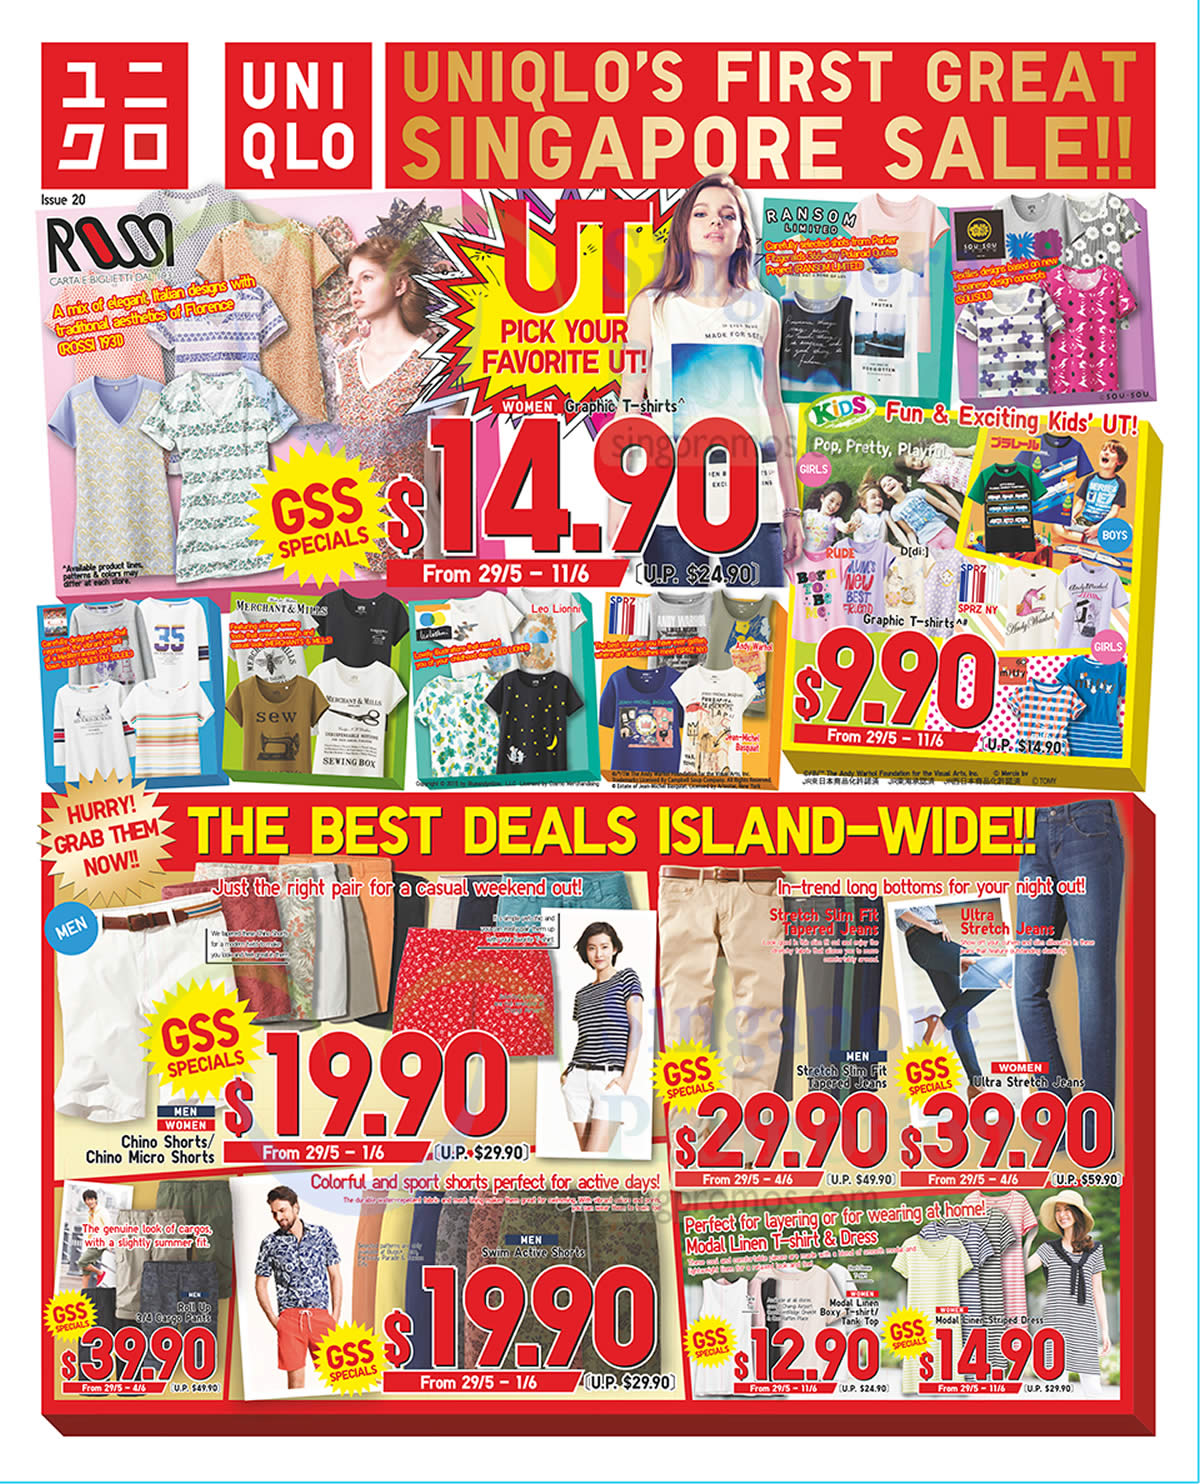 9c070c9a61c8bd Uniqlo Islandwide GSS Limited Offers 30 May – 11 Jun 2015